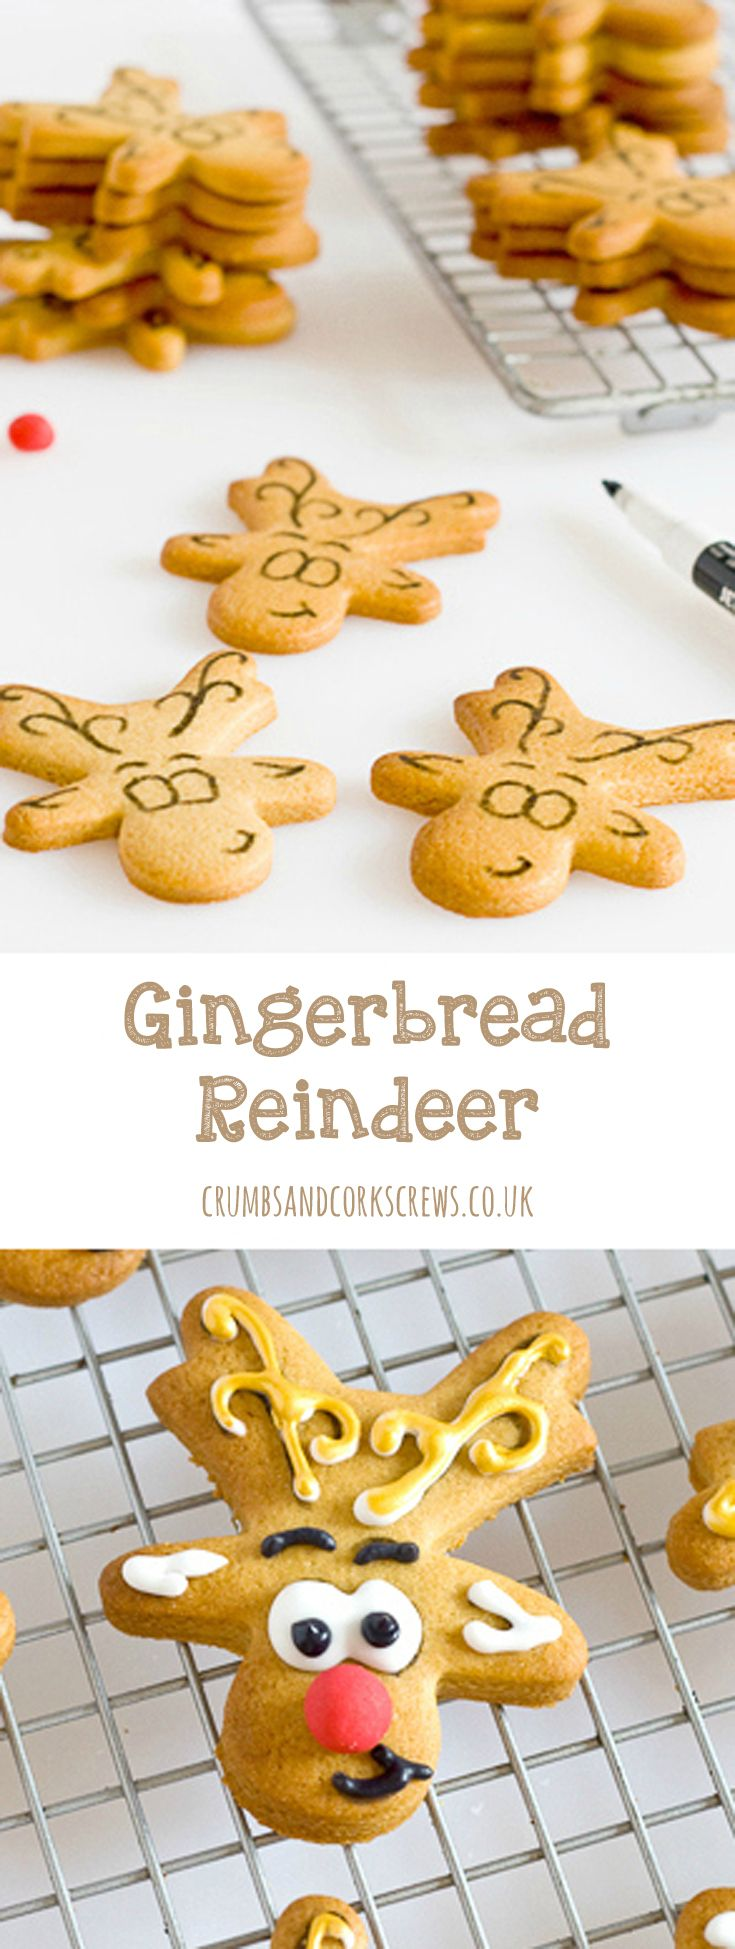 Picture if you will, a week before Christmas and a beautiful winter wedding, deep in the heart of the Cotswolds, full of sparkle and magic, glamour and elegance, and oh…. gingerbread reindeer!